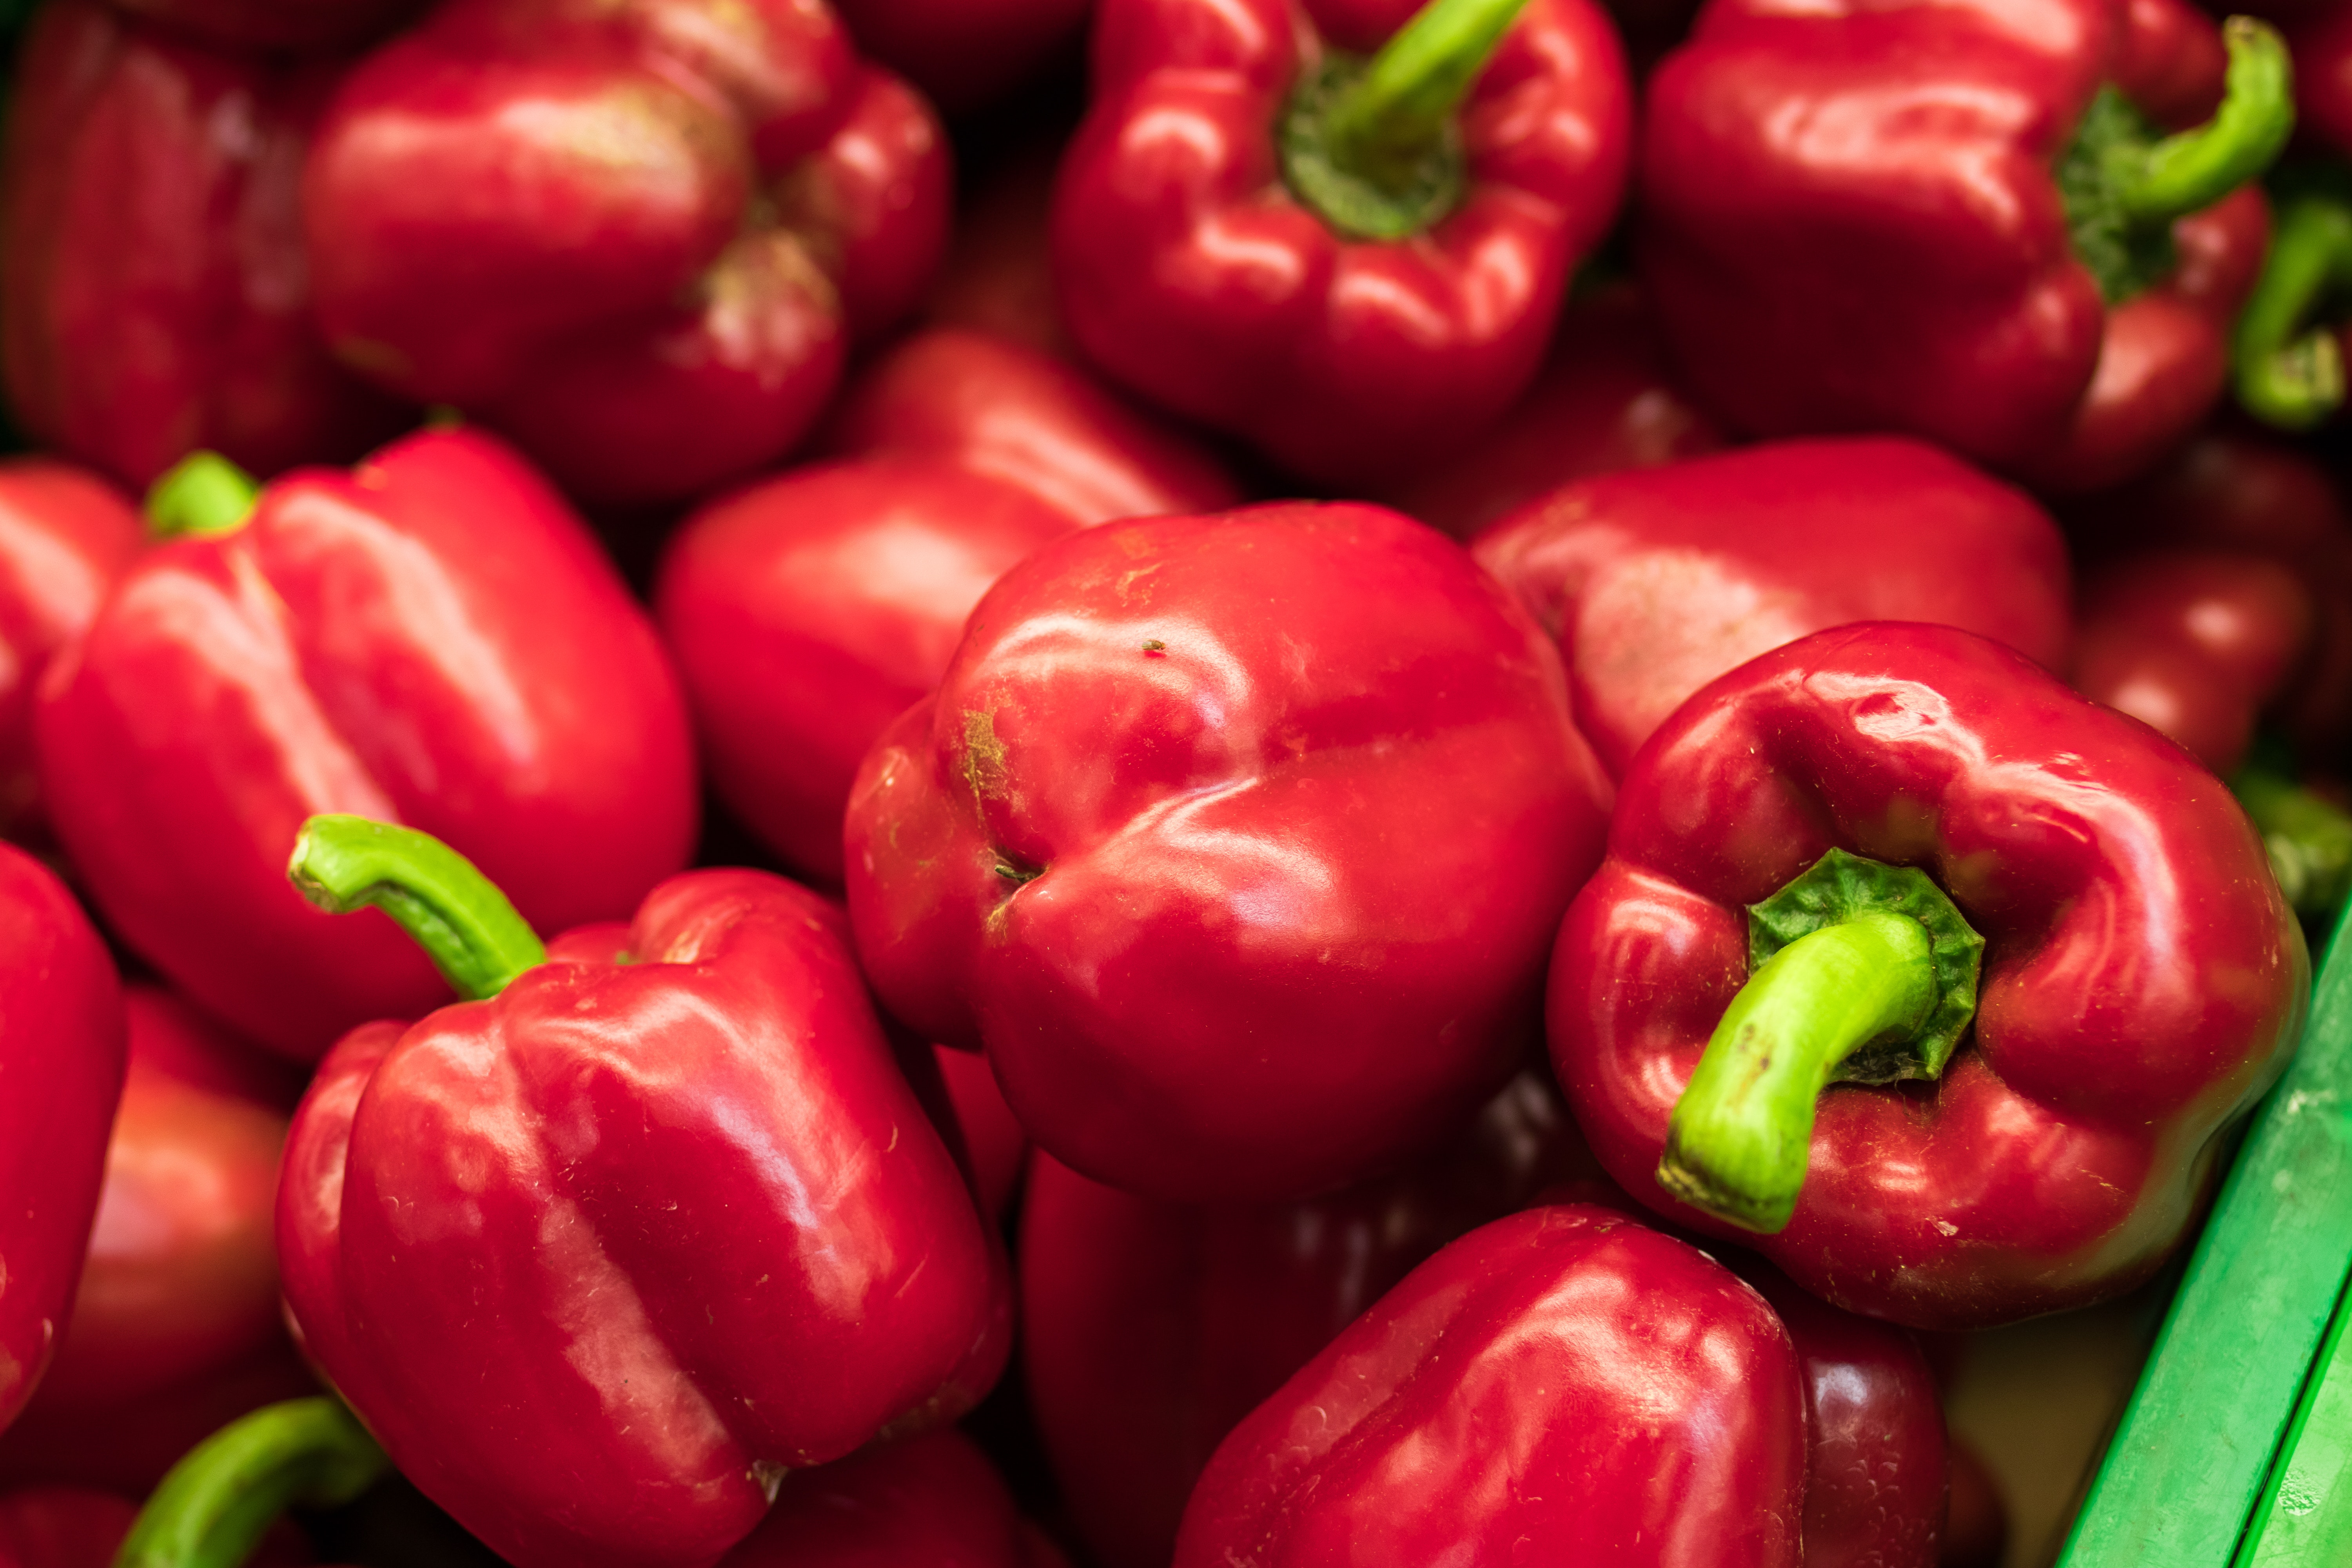 bell-peppers-chili-chili-peppers-452773.